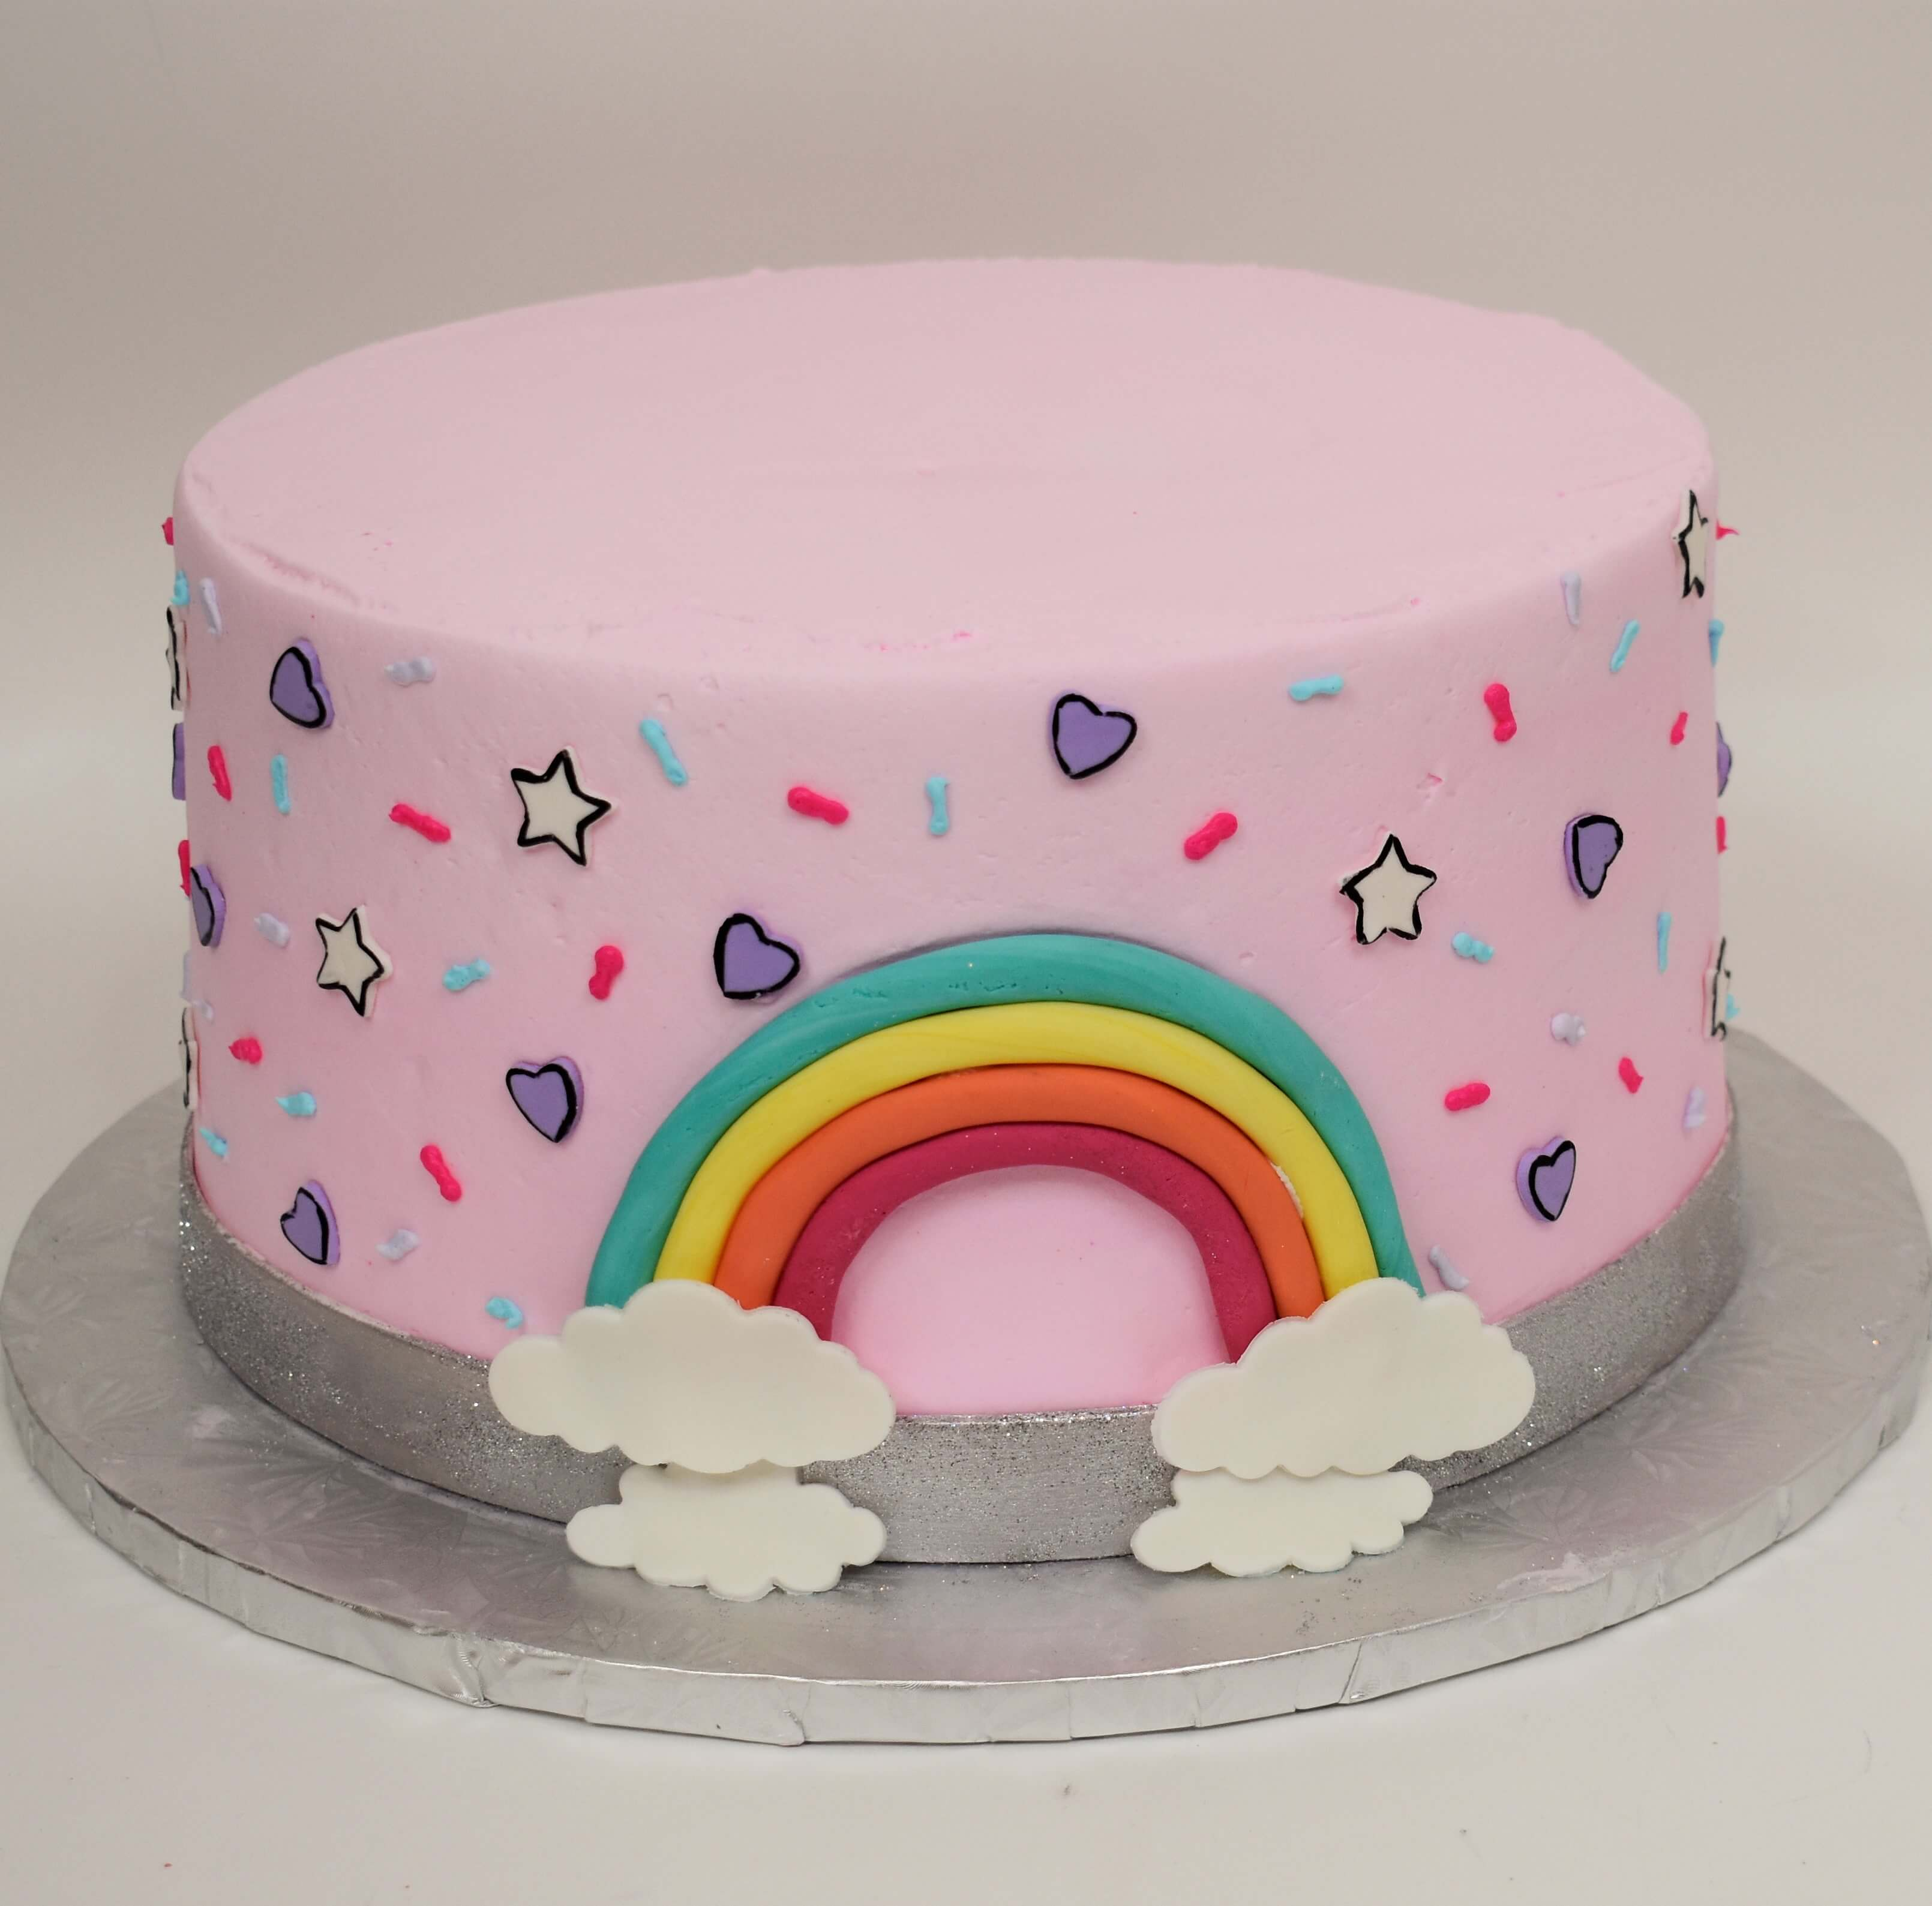 McArthur's Bakery Custom Cake with Rainbows, Hears, Stars, Sprinkles, Pink Icing